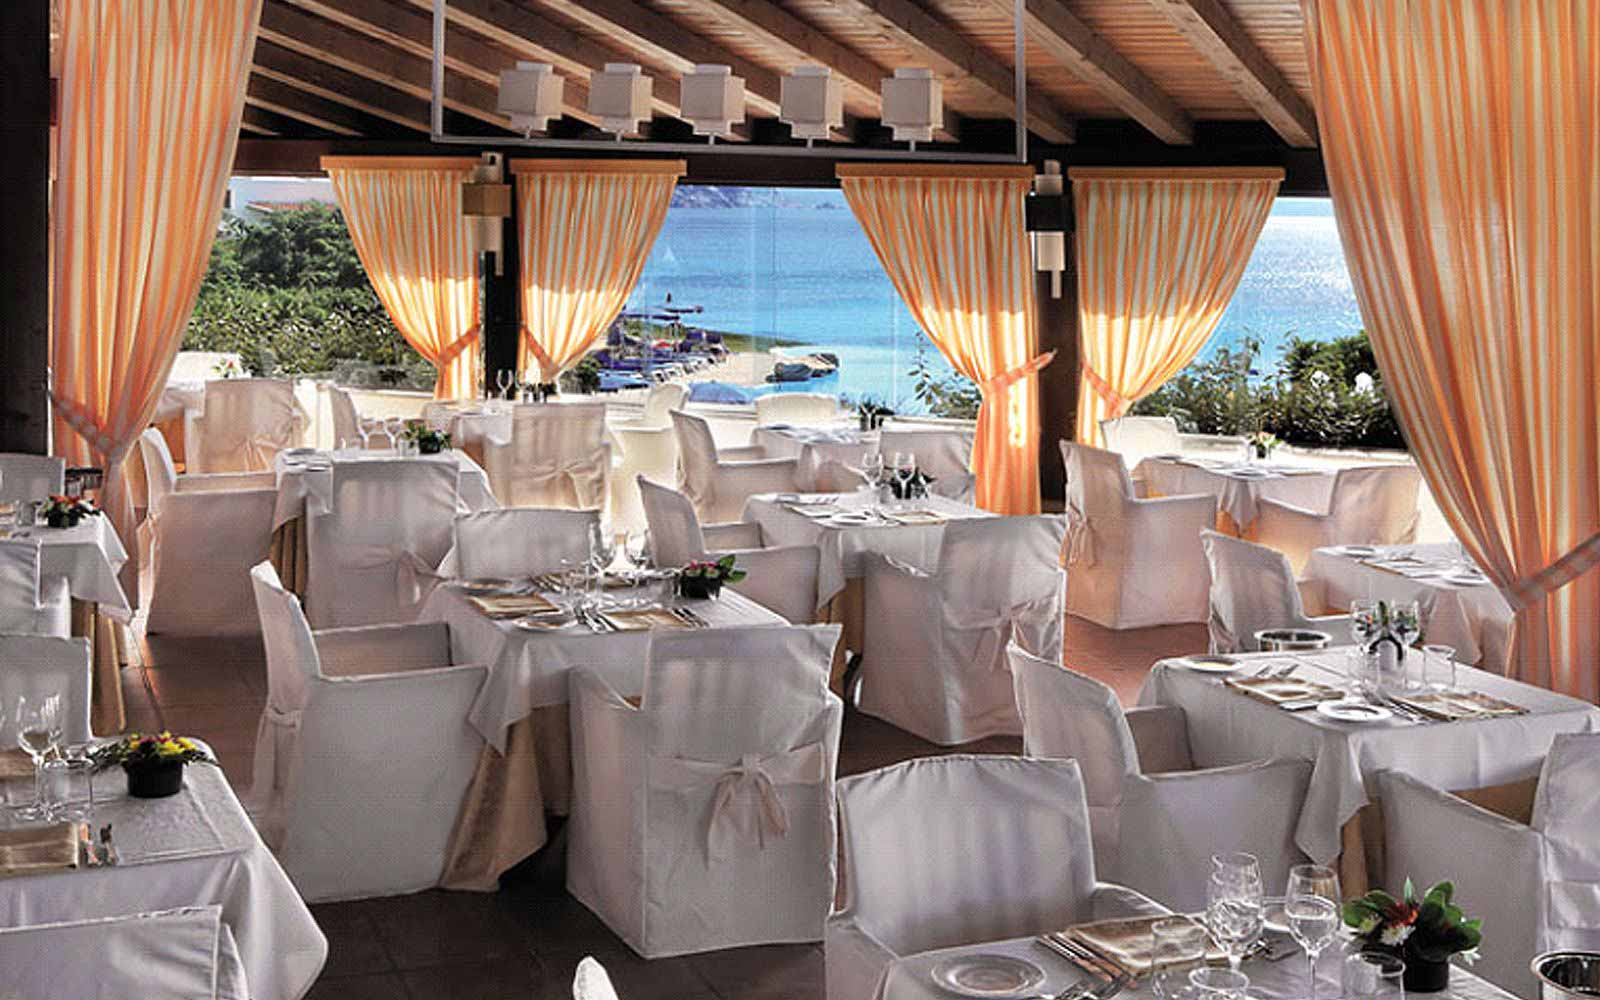 Restaurant at the Colonna Grand Hotel Capo Testa